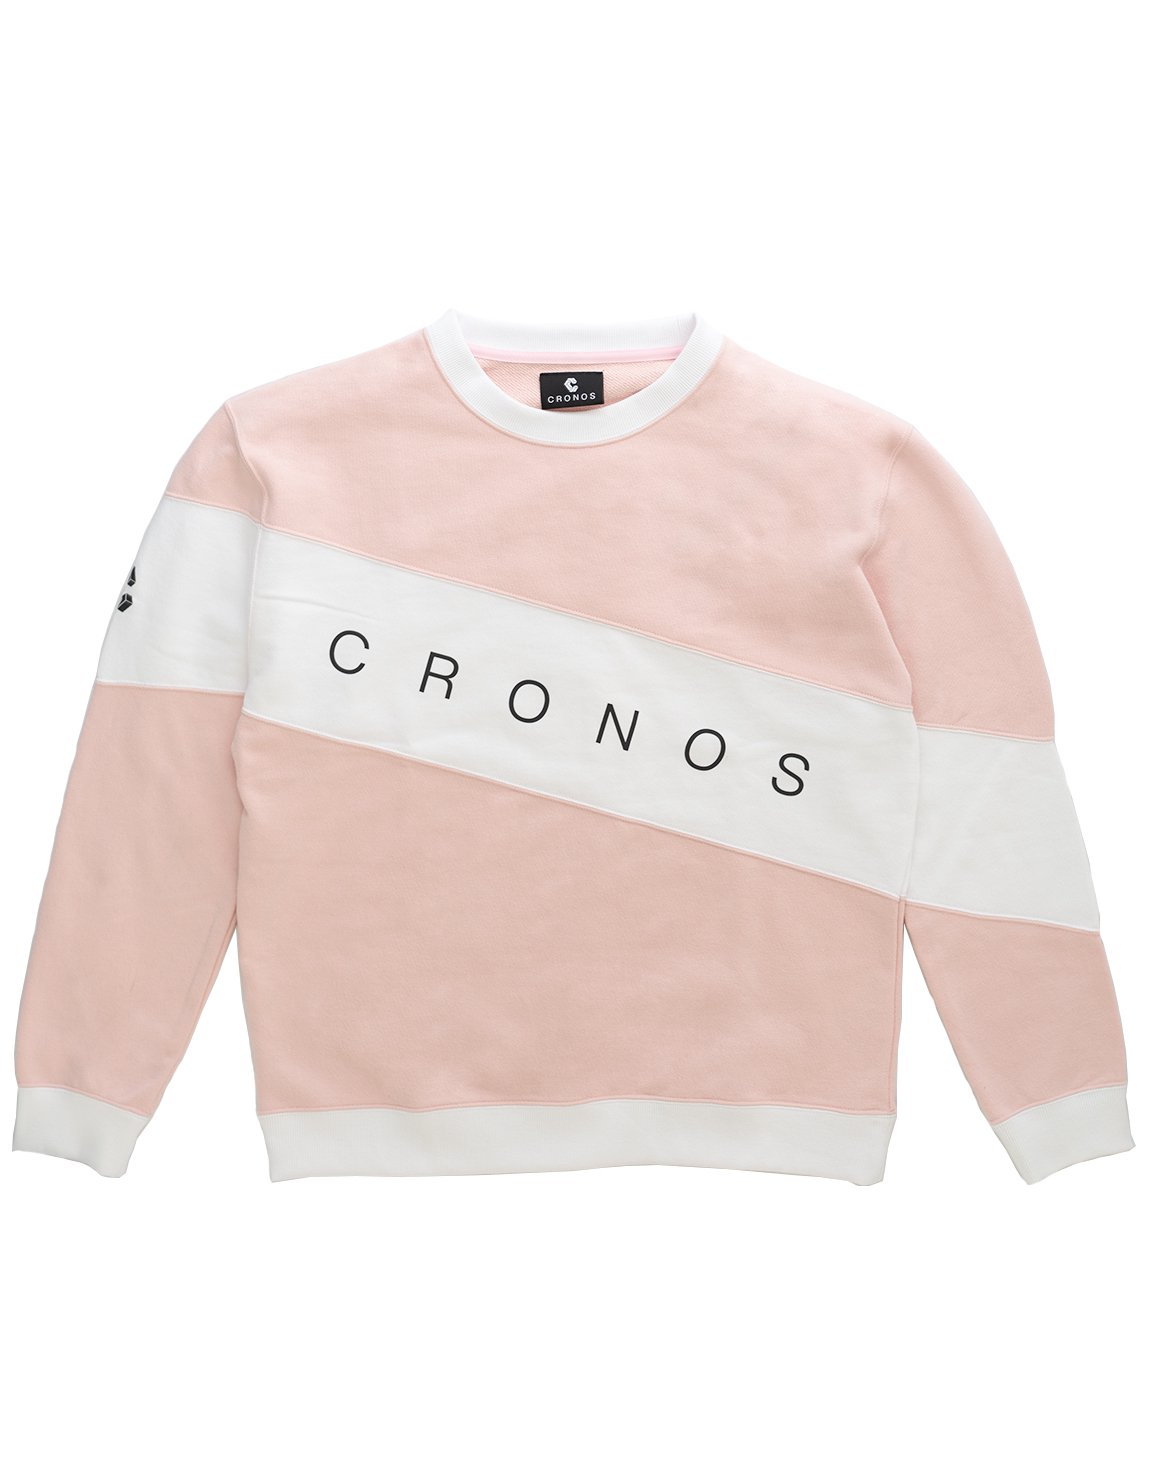 <img class='new_mark_img1' src='https://img.shop-pro.jp/img/new/icons1.gif' style='border:none;display:inline;margin:0px;padding:0px;width:auto;' />CRONOS FRONT THICK LINE TRAINER【PINK】